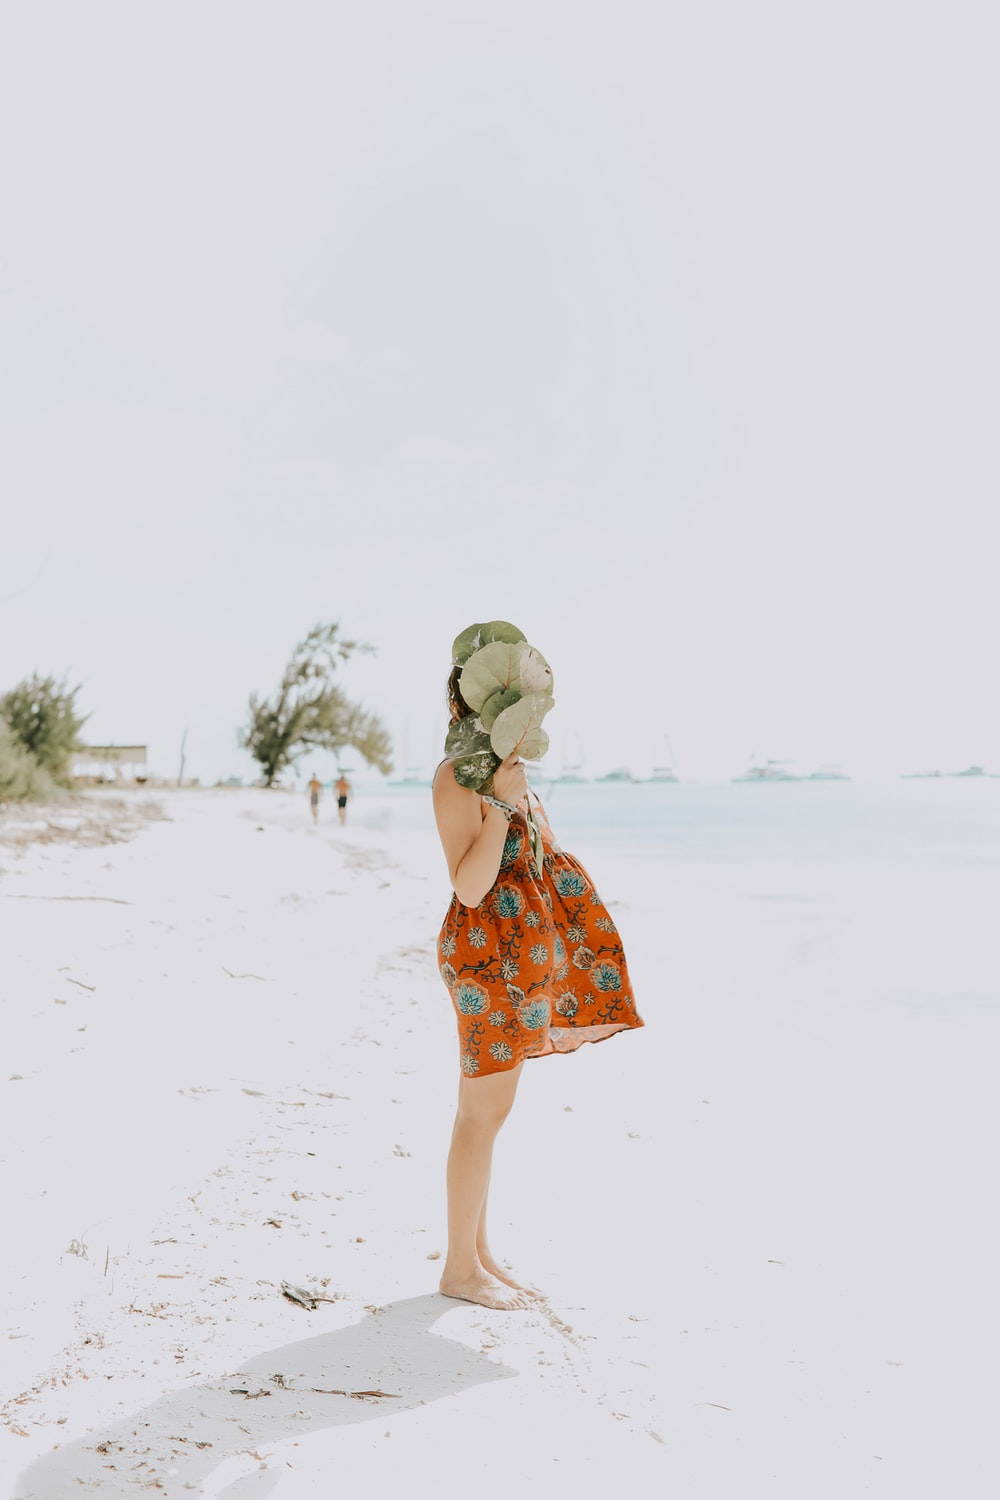 girl wearing orange and green floral dress standing on beige sand during daytime